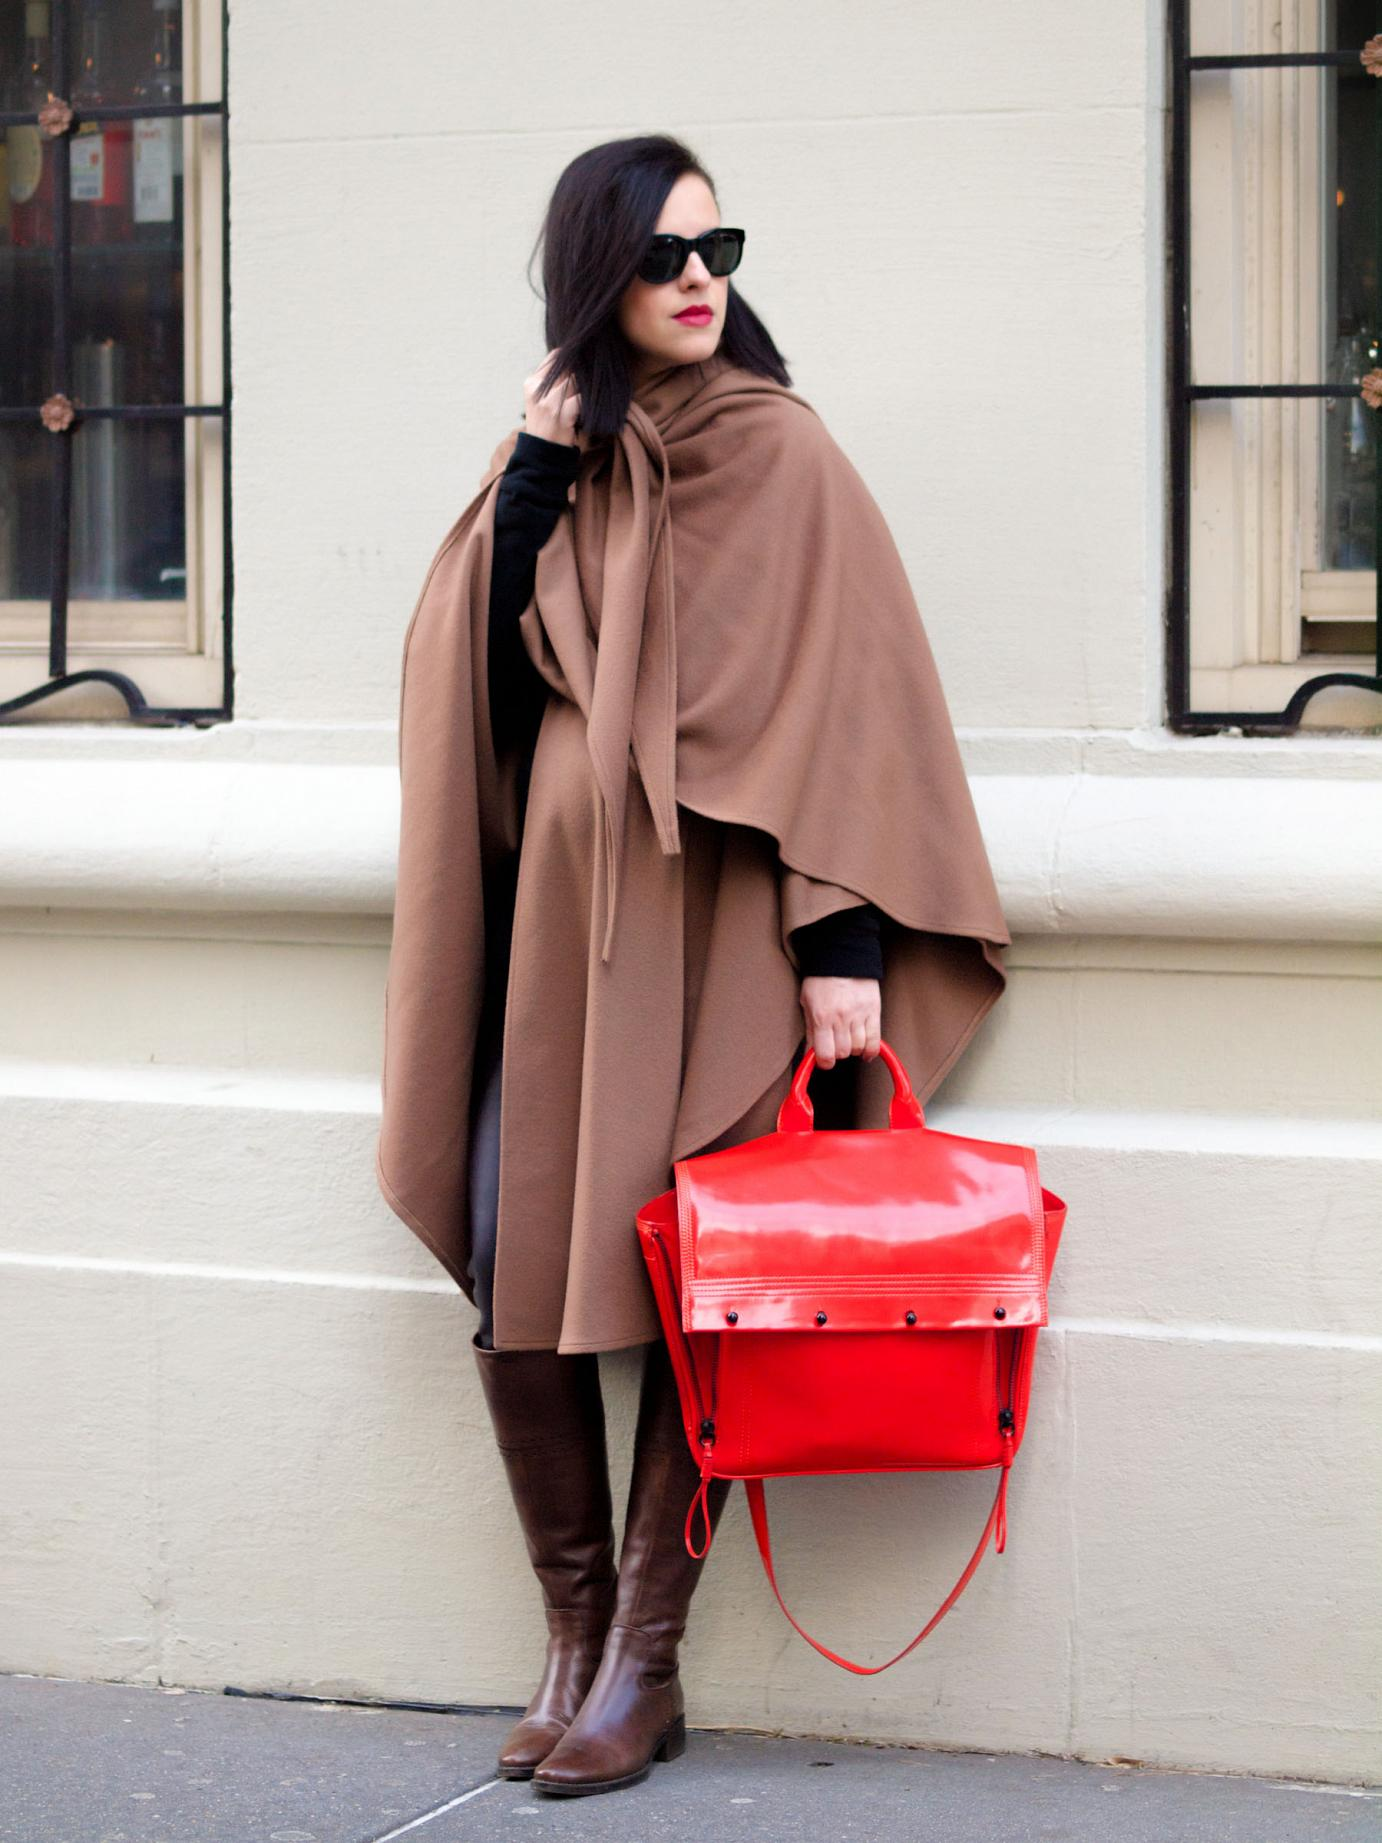 bittersweet colours, street style, winter coats, cape, benetton boots, 3.1 phillip lim bag, winter street style, maternity style, 27 weeks, New York, leather leggings, camel cape